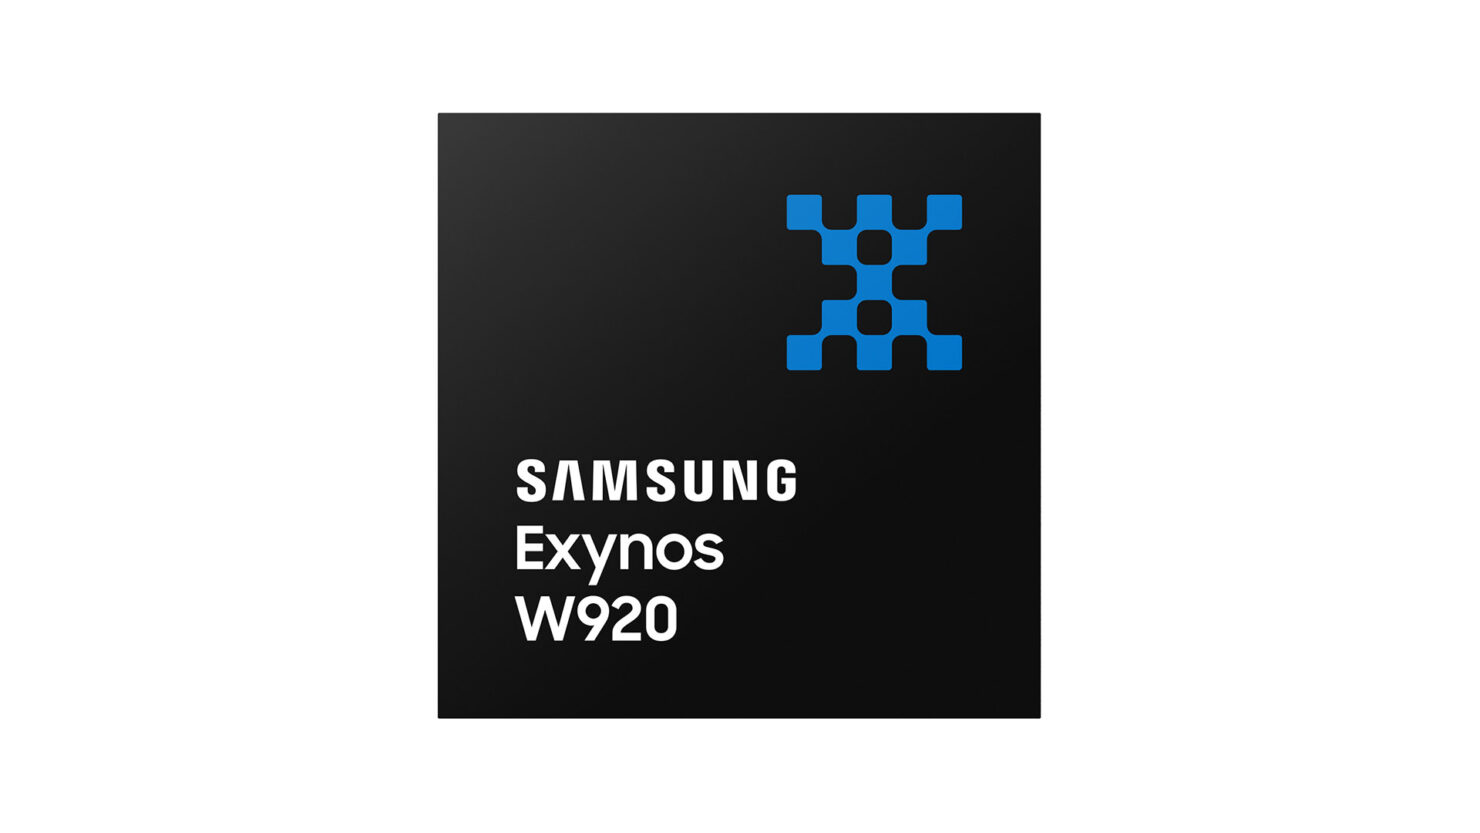 Samsung Exynos W920 Is the World's First 5nm Chipset Designed for Wearables; Boasts Massive GPU Gains